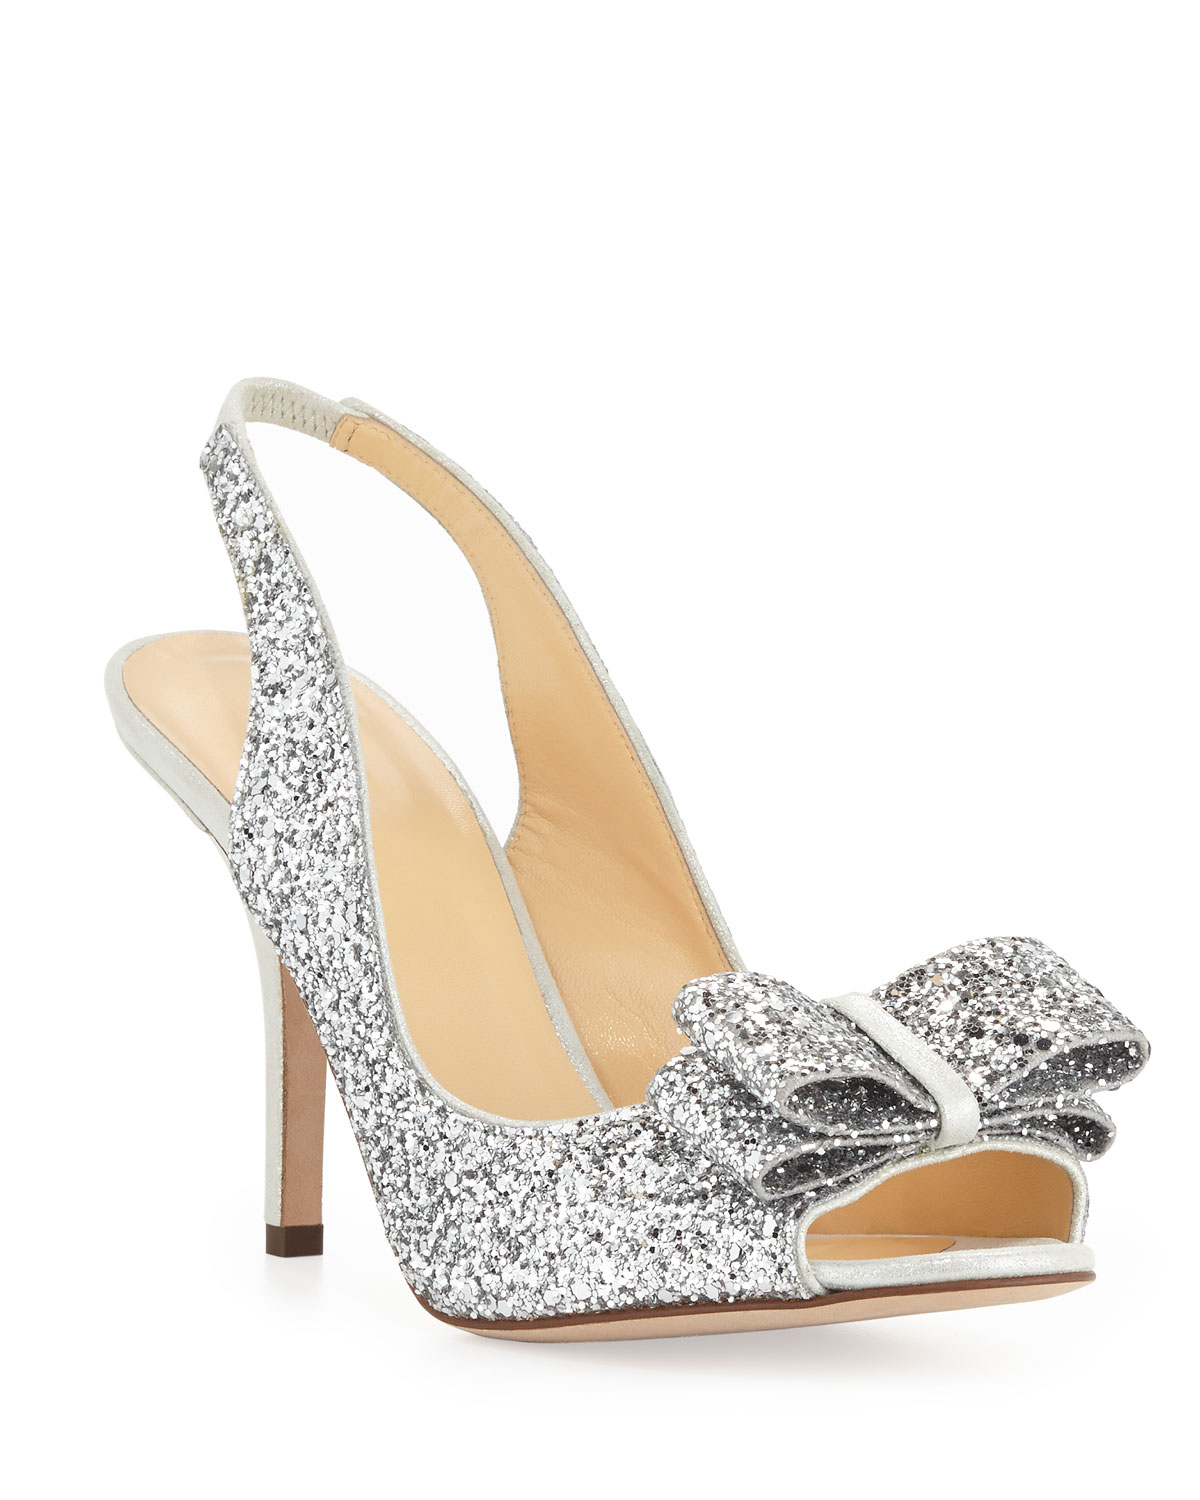 d7aa719aff1 kate spade new york charm glittered bow slingback